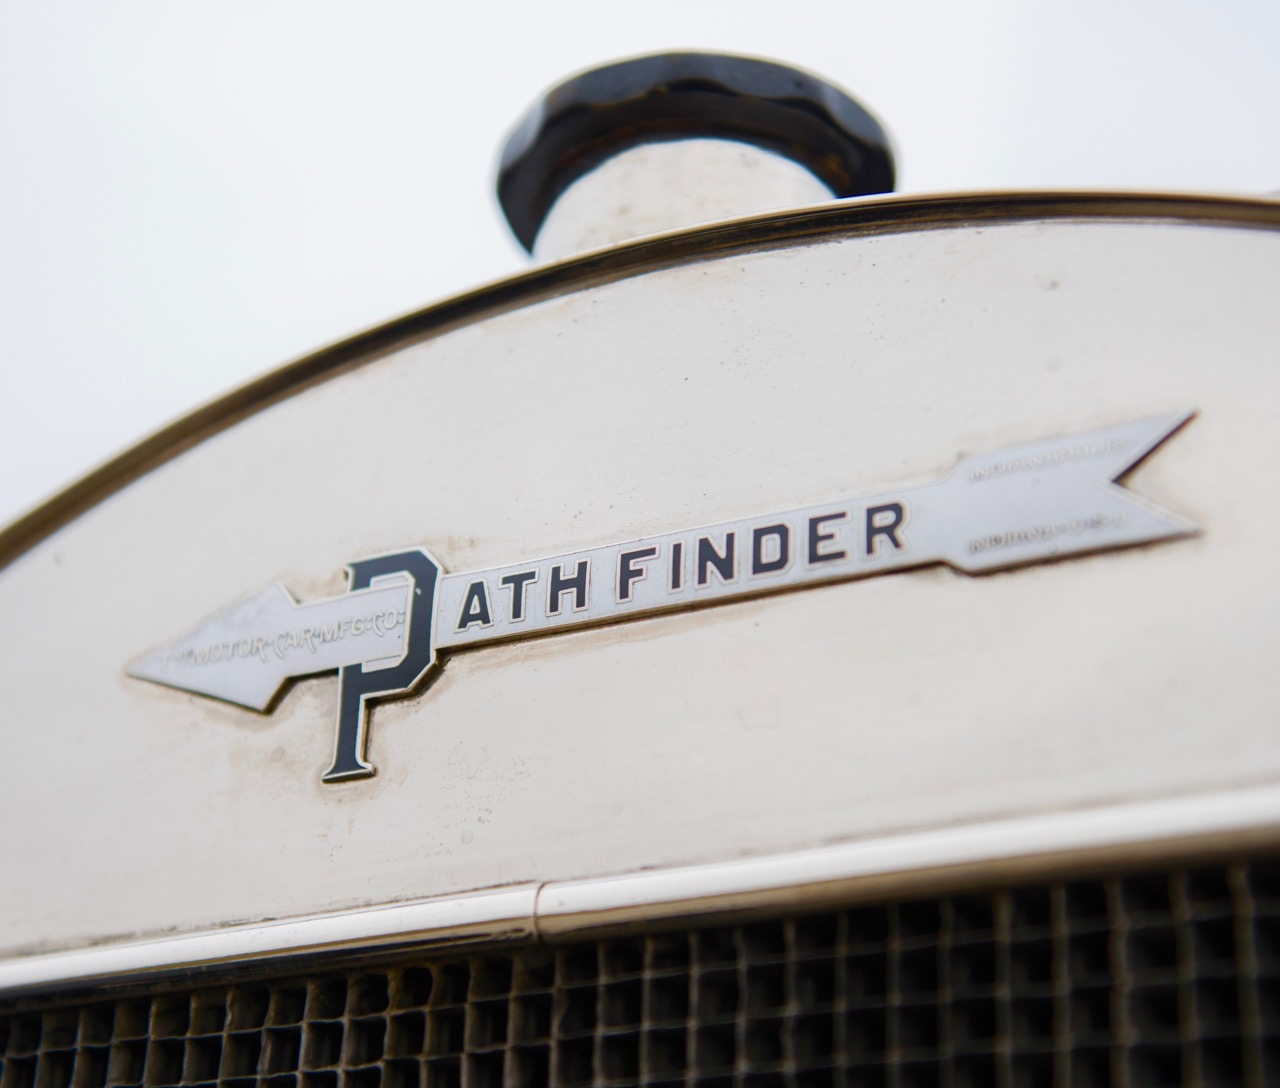 Pathfinder logo on the radiator